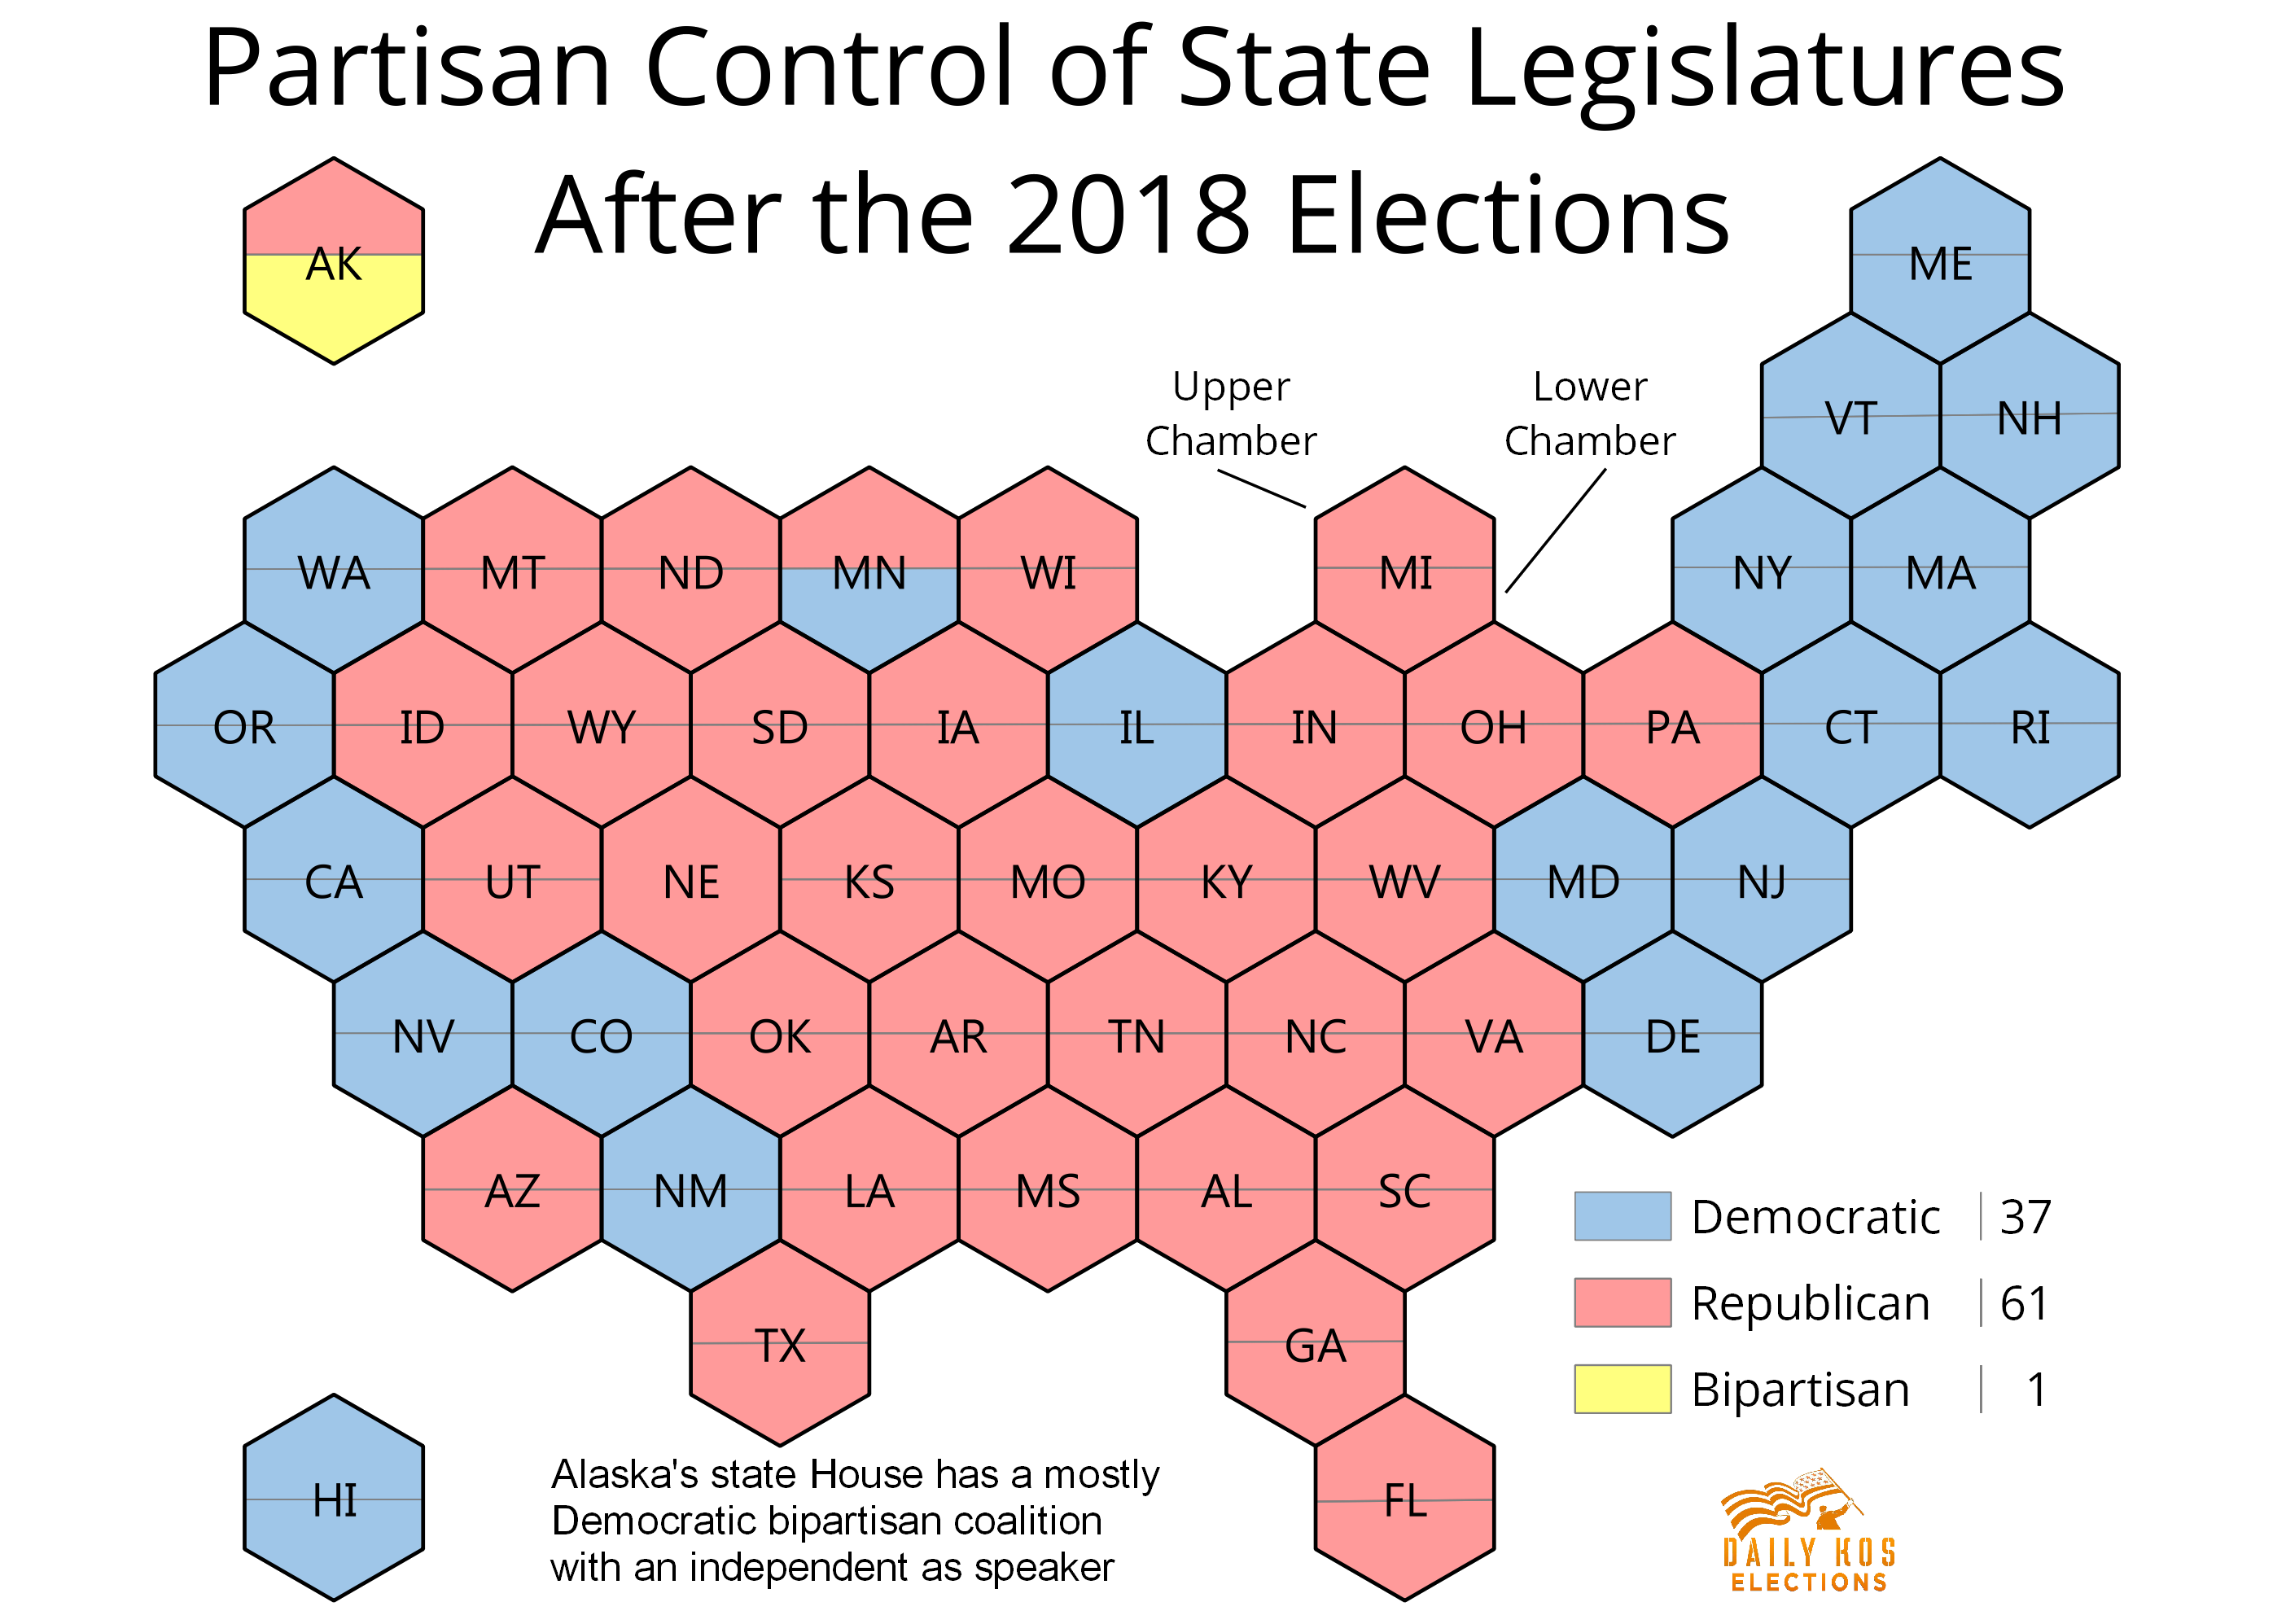 These maps show when each state legislative chamber is up